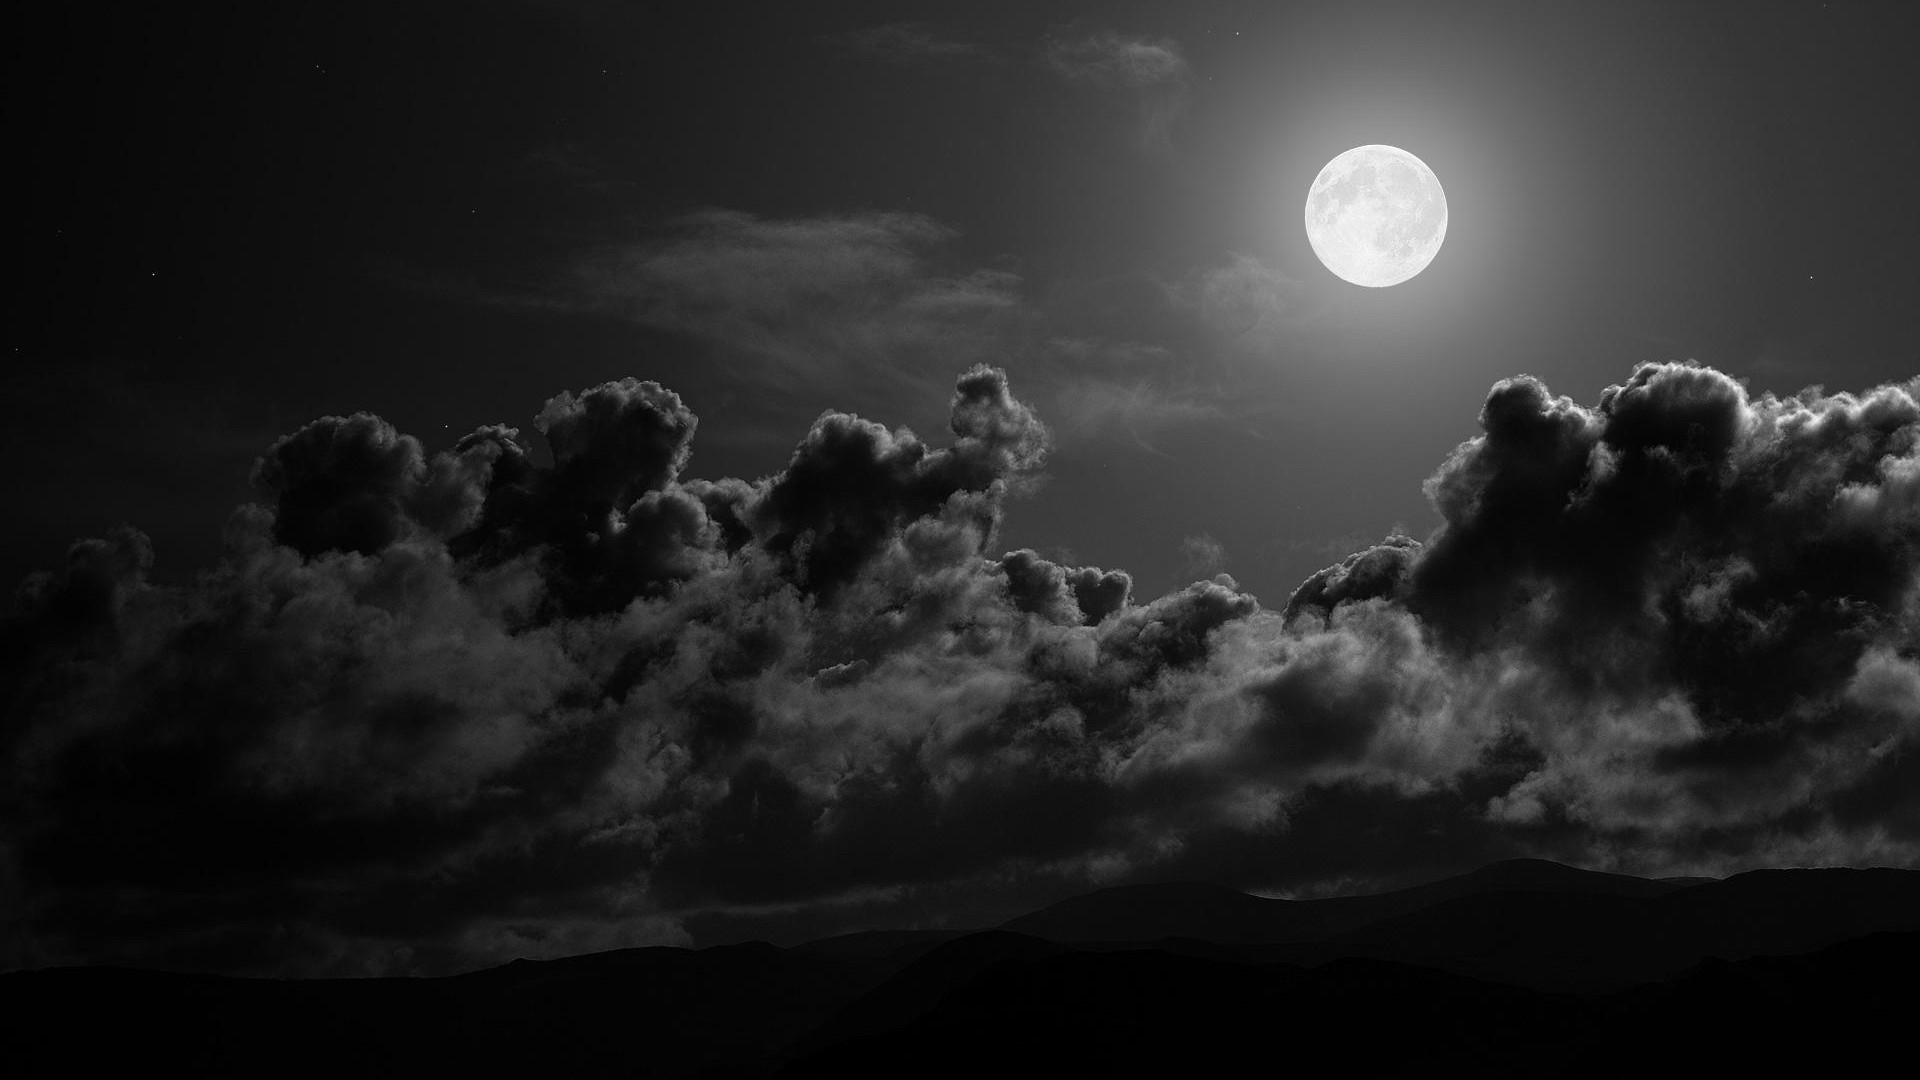 Hd Black And White Wallpaper 78 Images